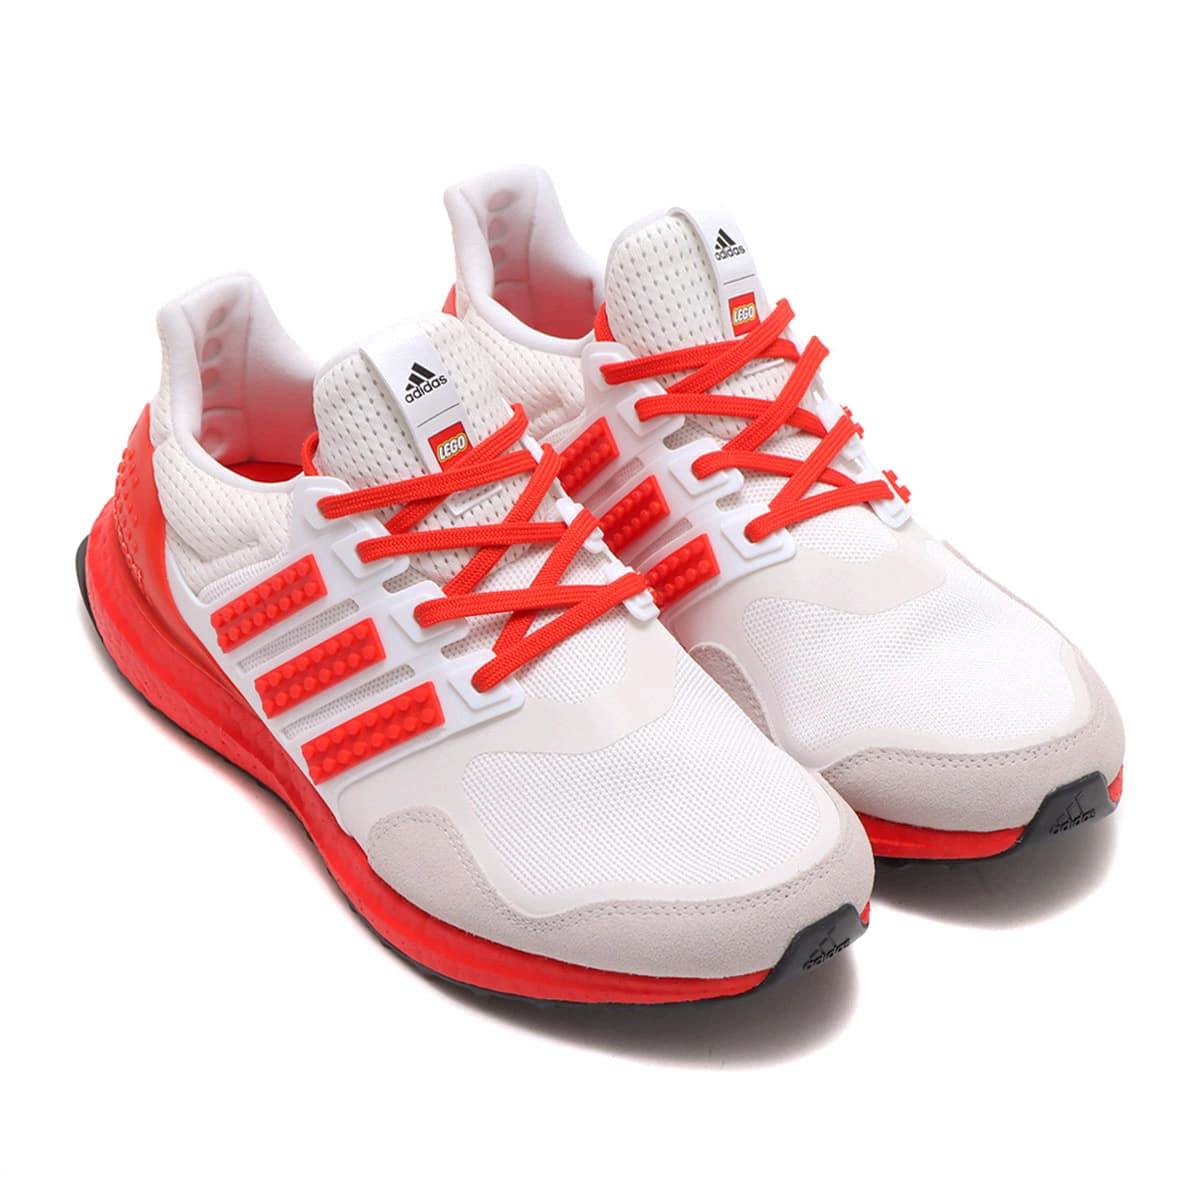 adidas ULTRABOOST X LEGO FOOTWEAR WHITE/RED/SHOCK BLUE 21FW-S_photo_large